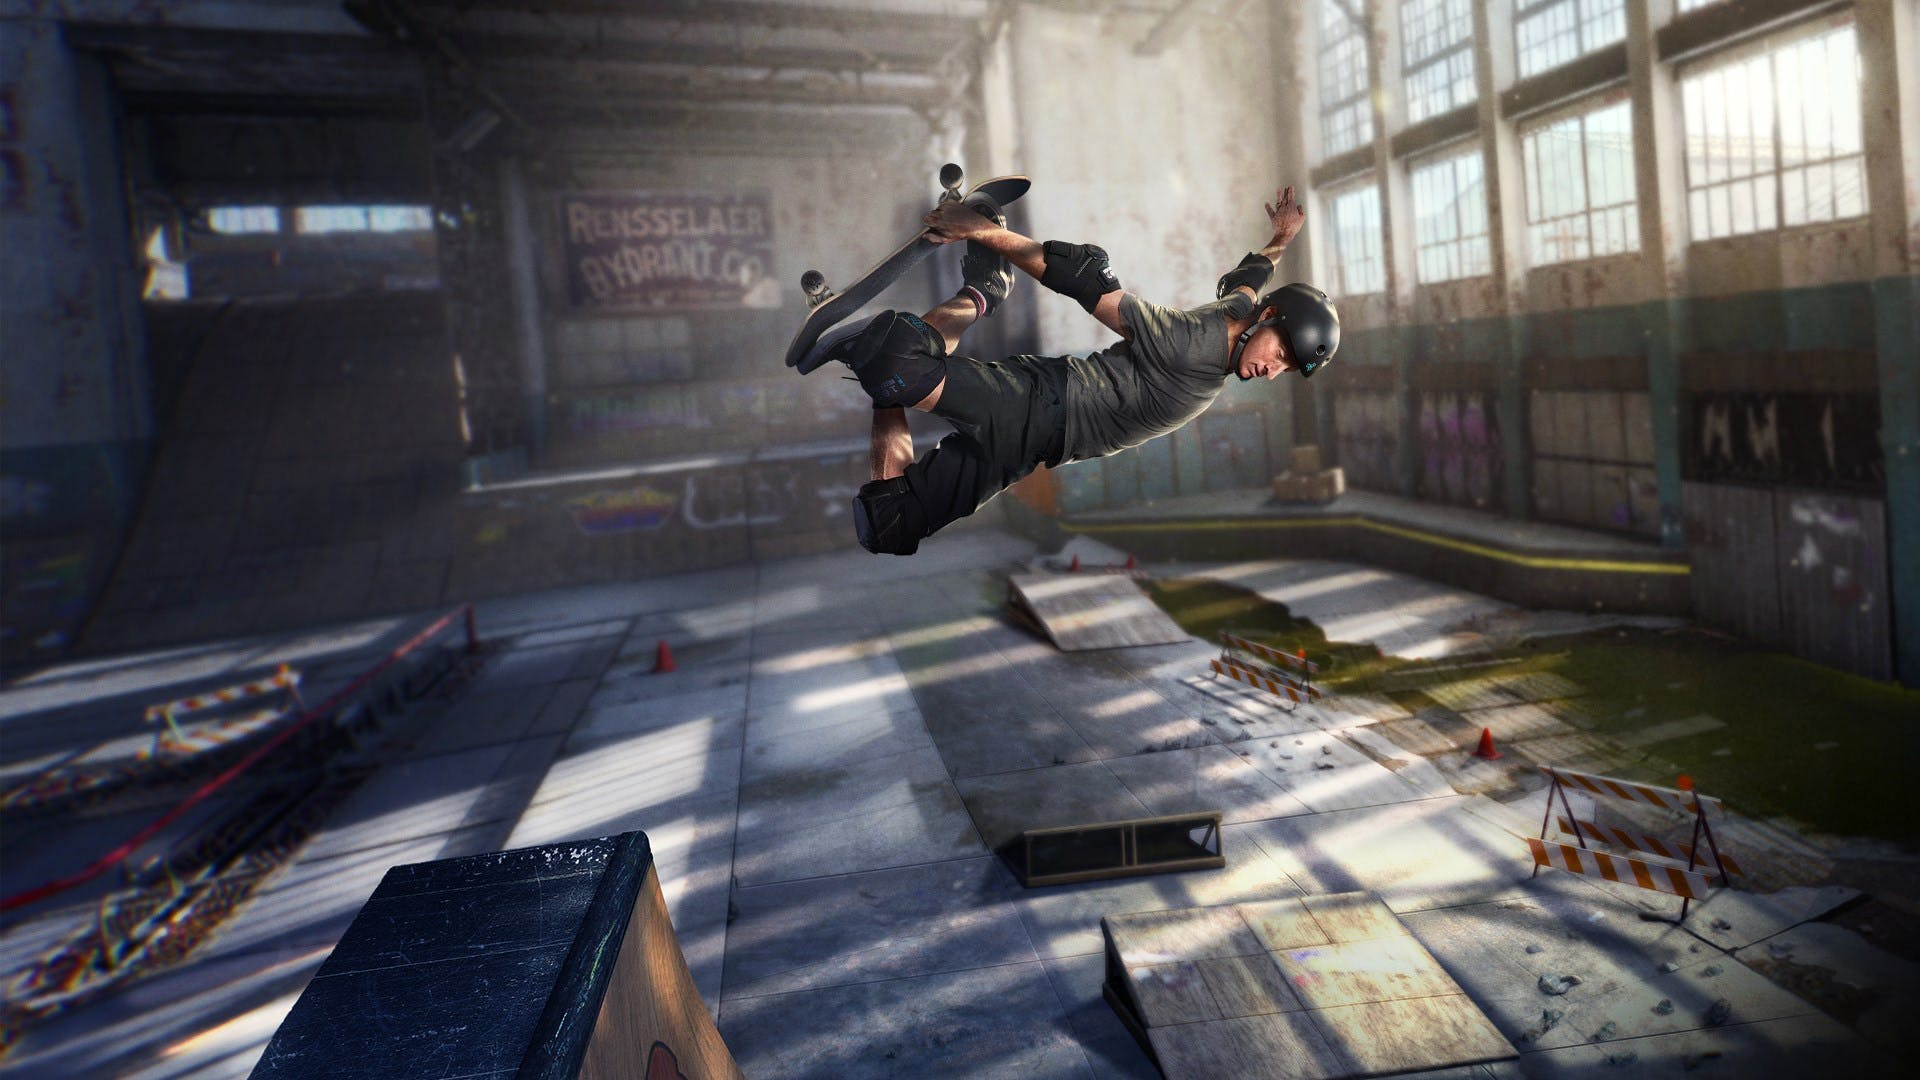 Tony Hawks Pro Skater 1 2 Remaster Aims to Stick the Landing 1920x1080